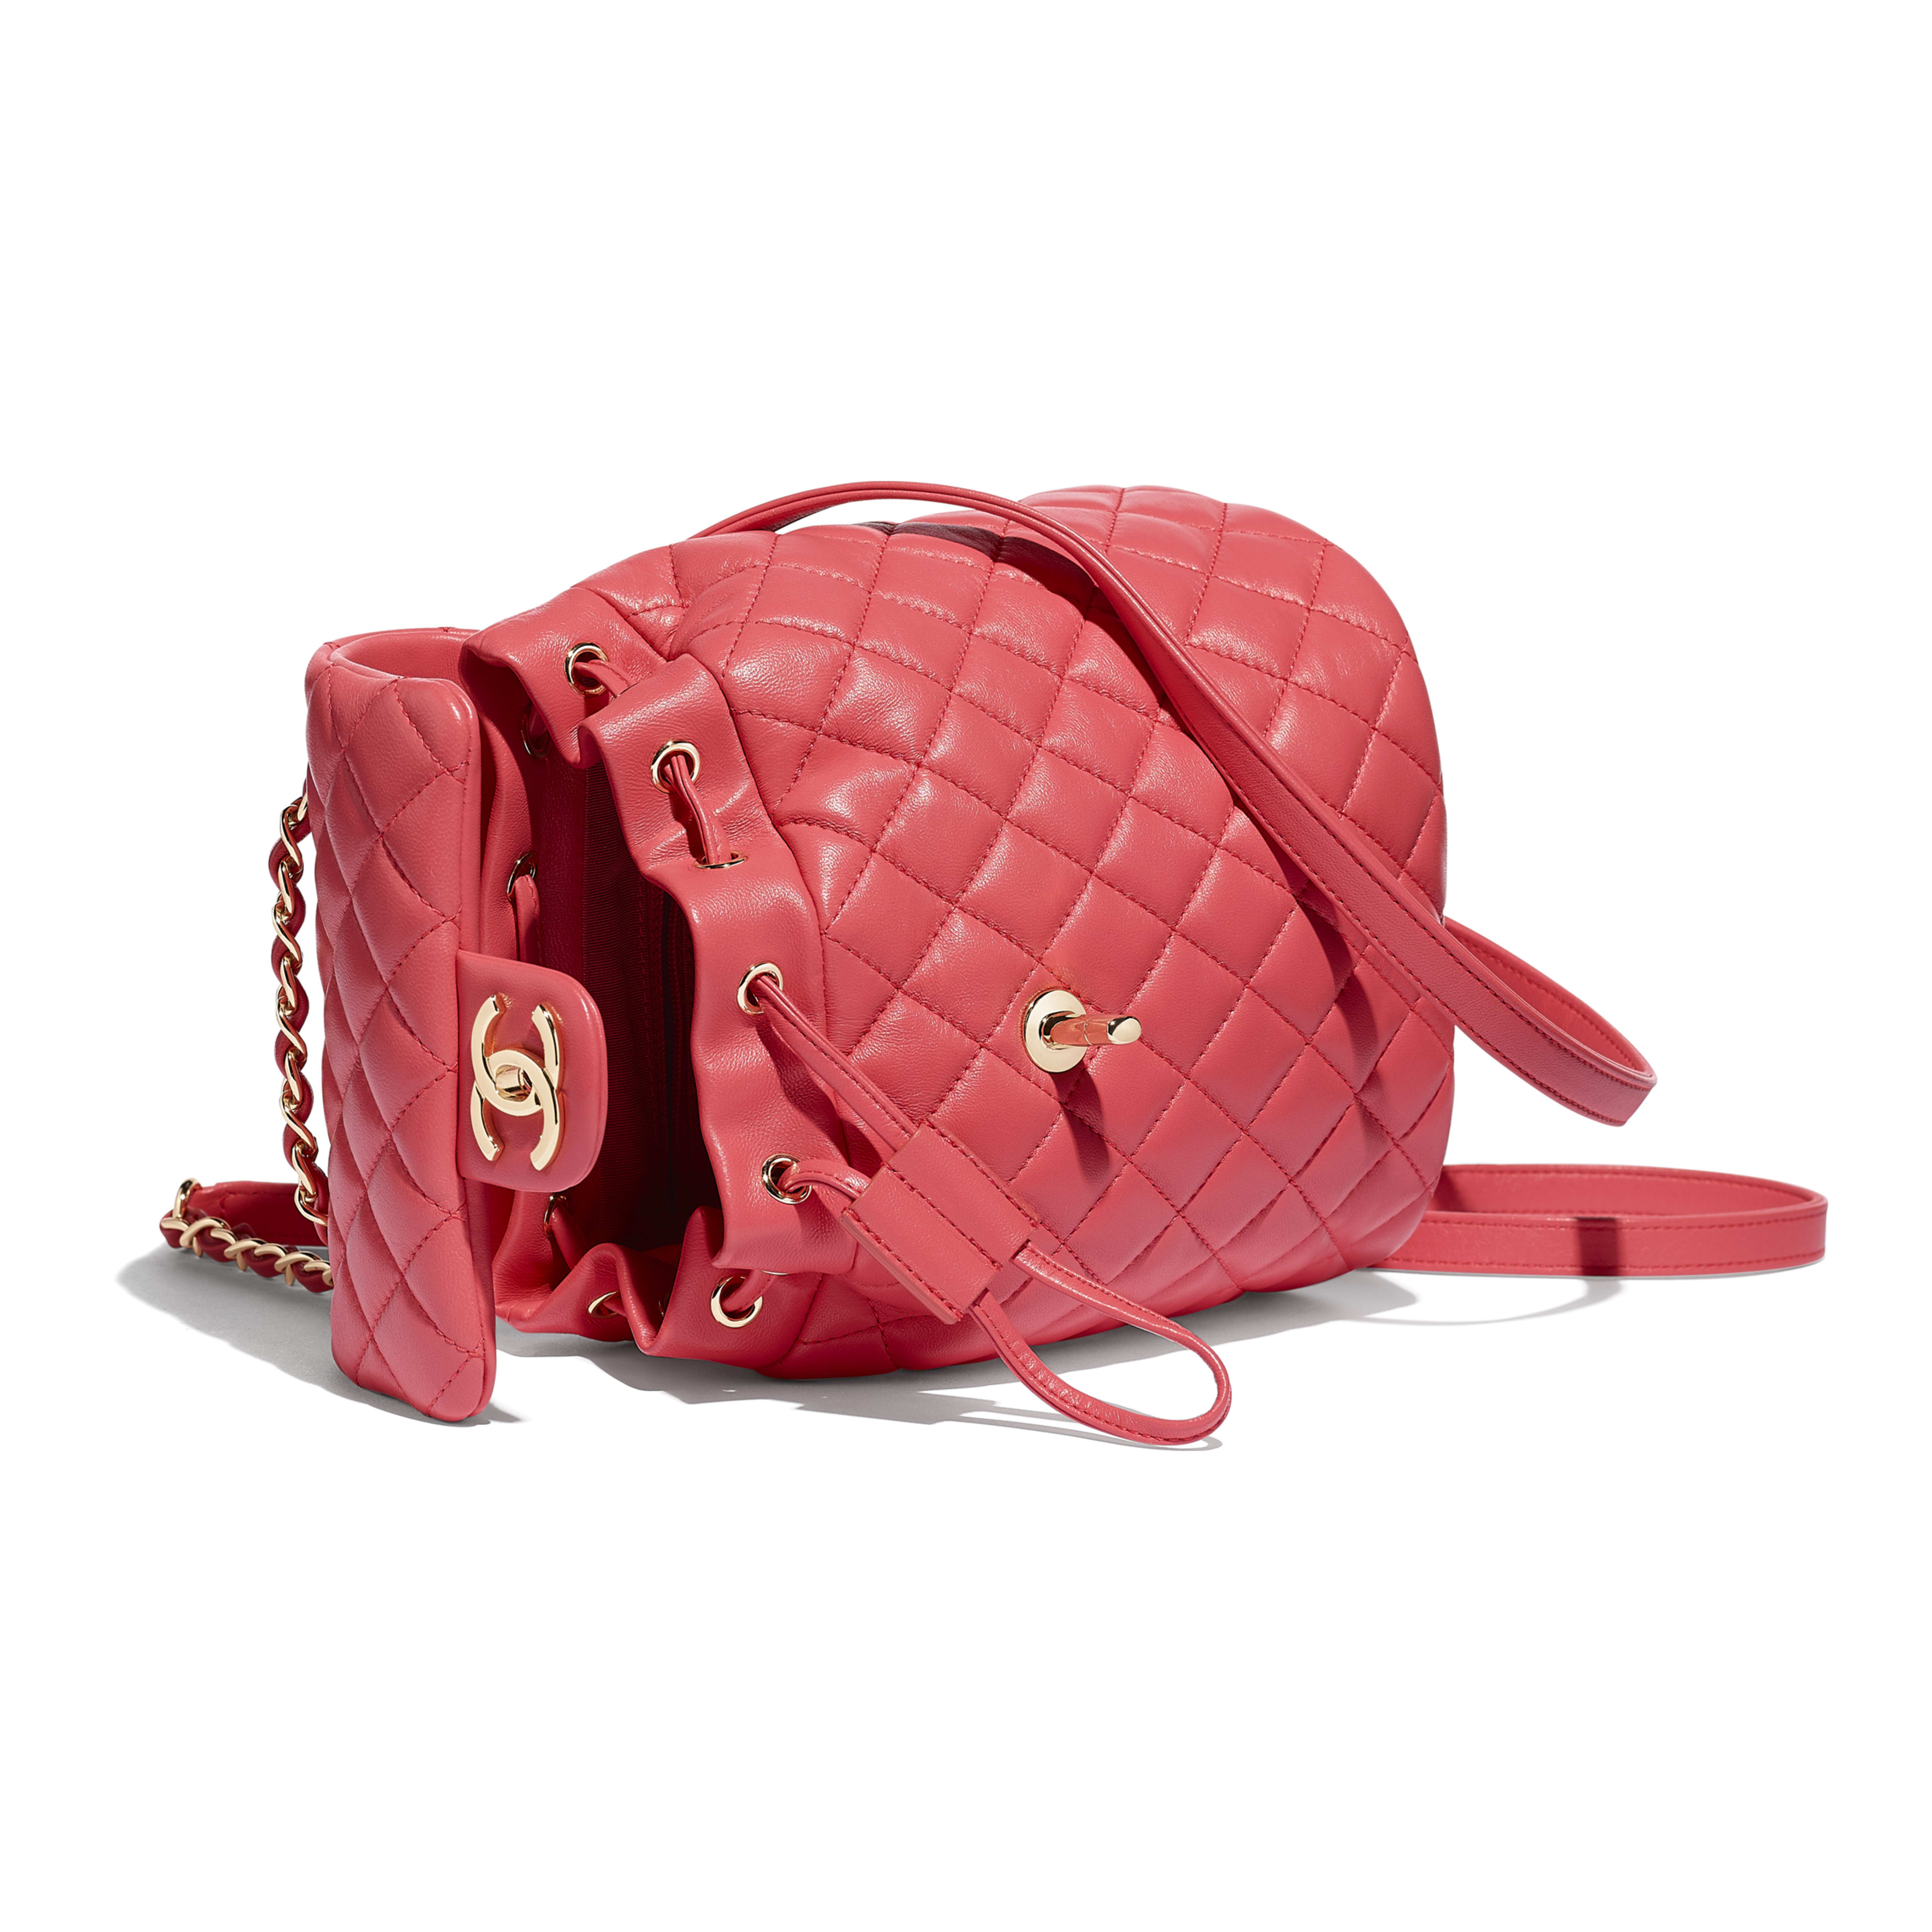 Backpack - Pink - Lambskin & Gold-Tone Metal - Other view - see full sized version